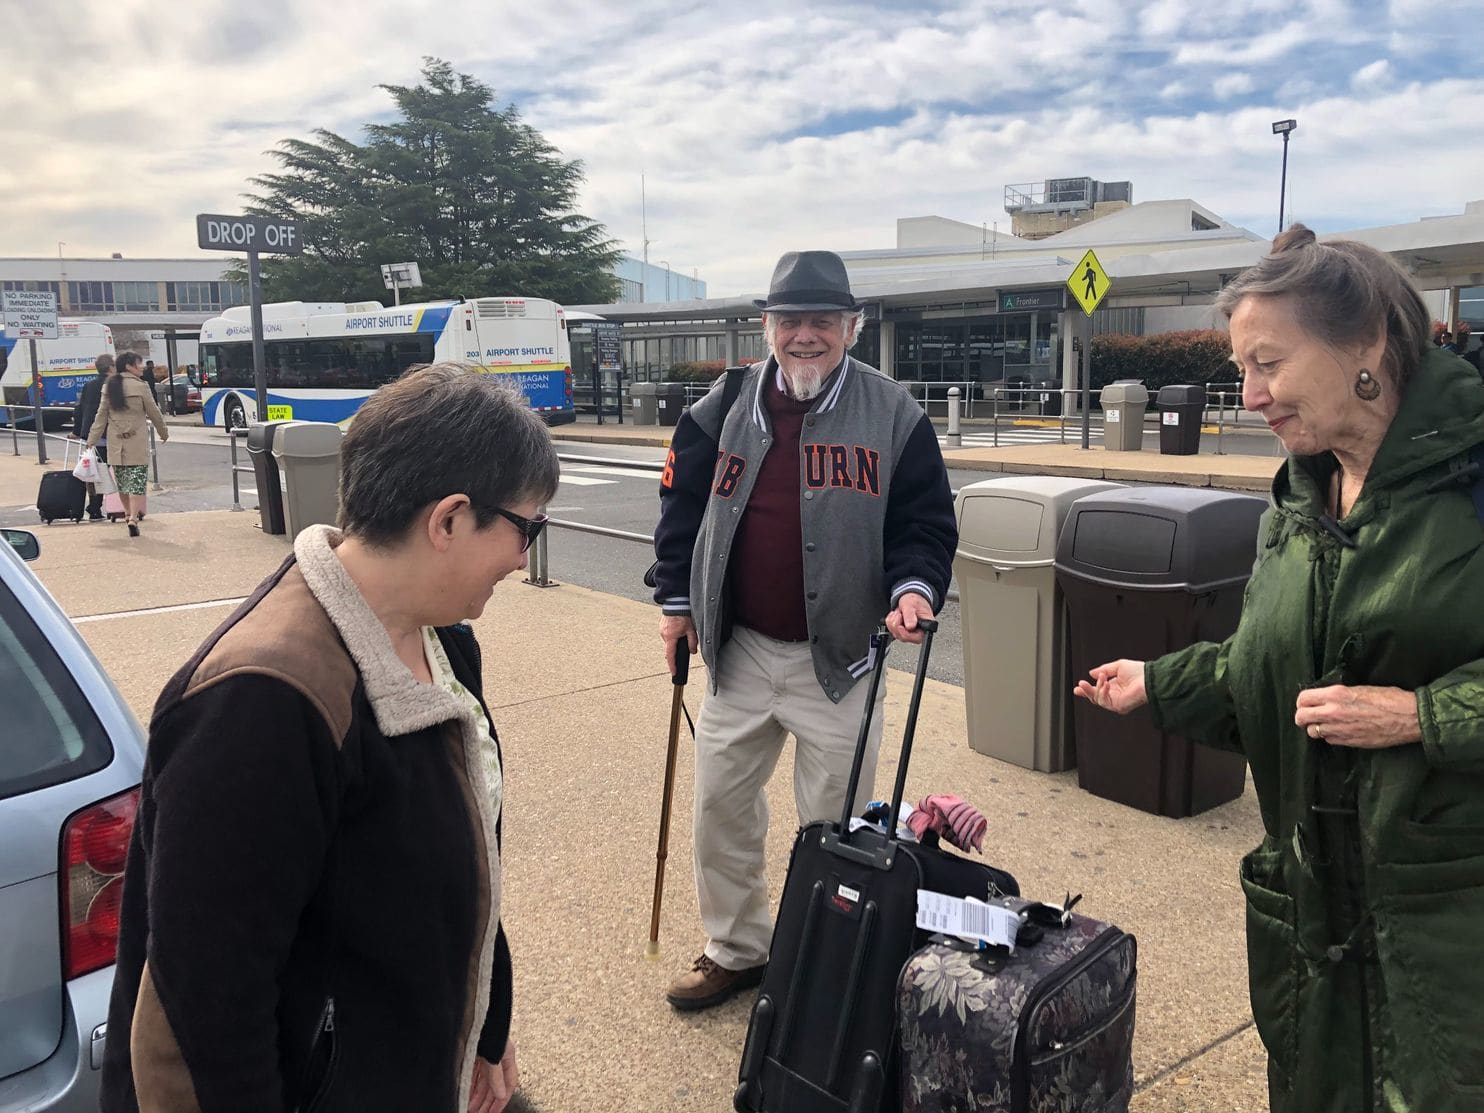 Susan Alexander, left, brings passengers Mary and Al Liepold to Reagan National Airport. All three are members of the Silver Spring Time Bank. (Justin Wm. Moyer/The Washington Post)